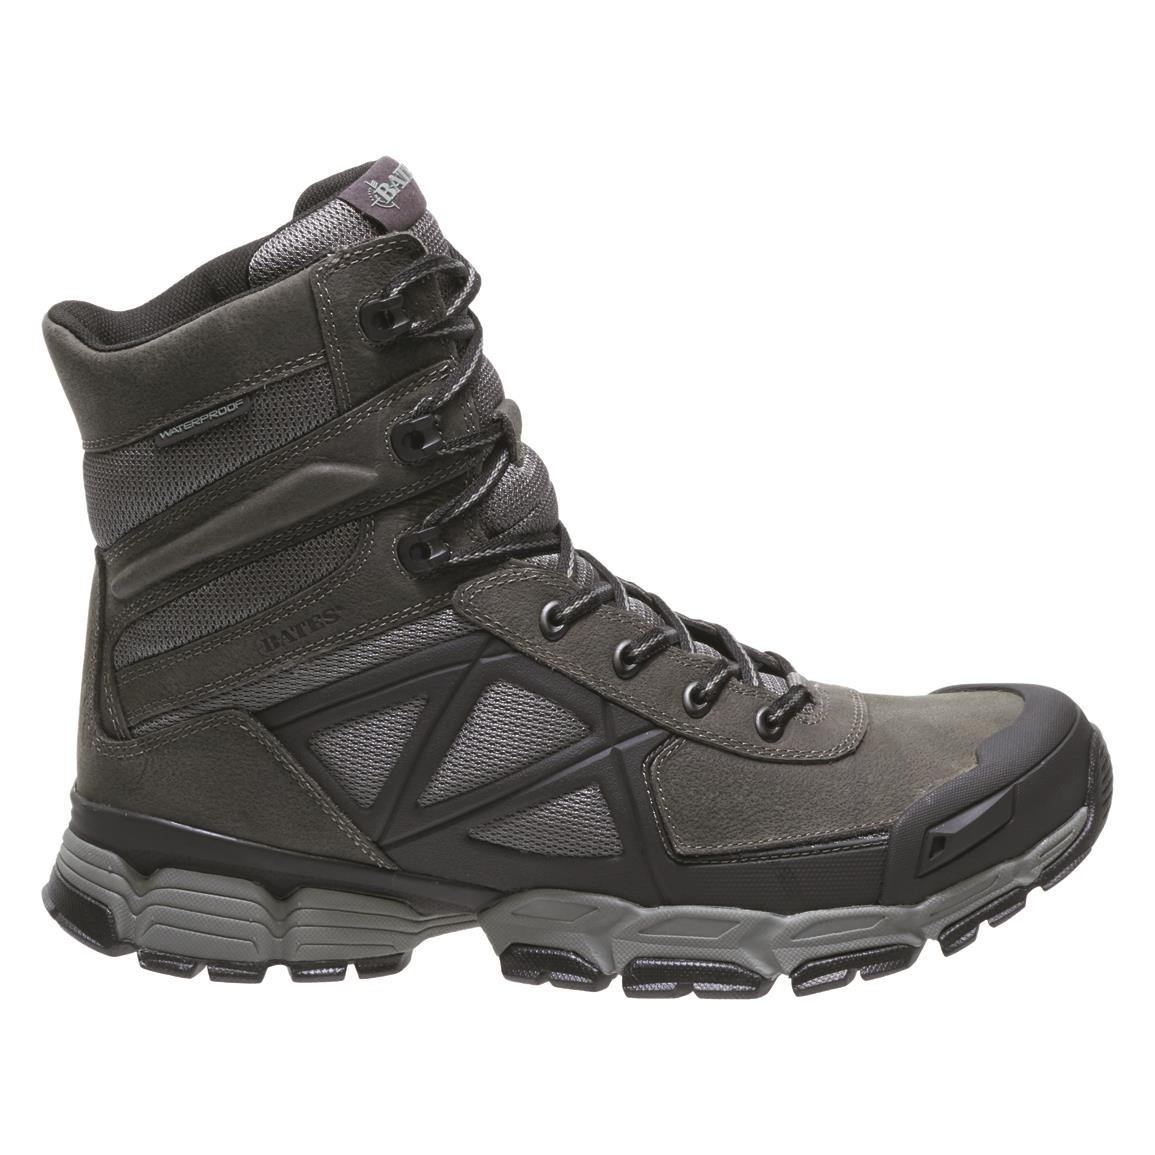 Bates Men's Velocitor FX Waterproof Hiking Boots, Dark Cloud